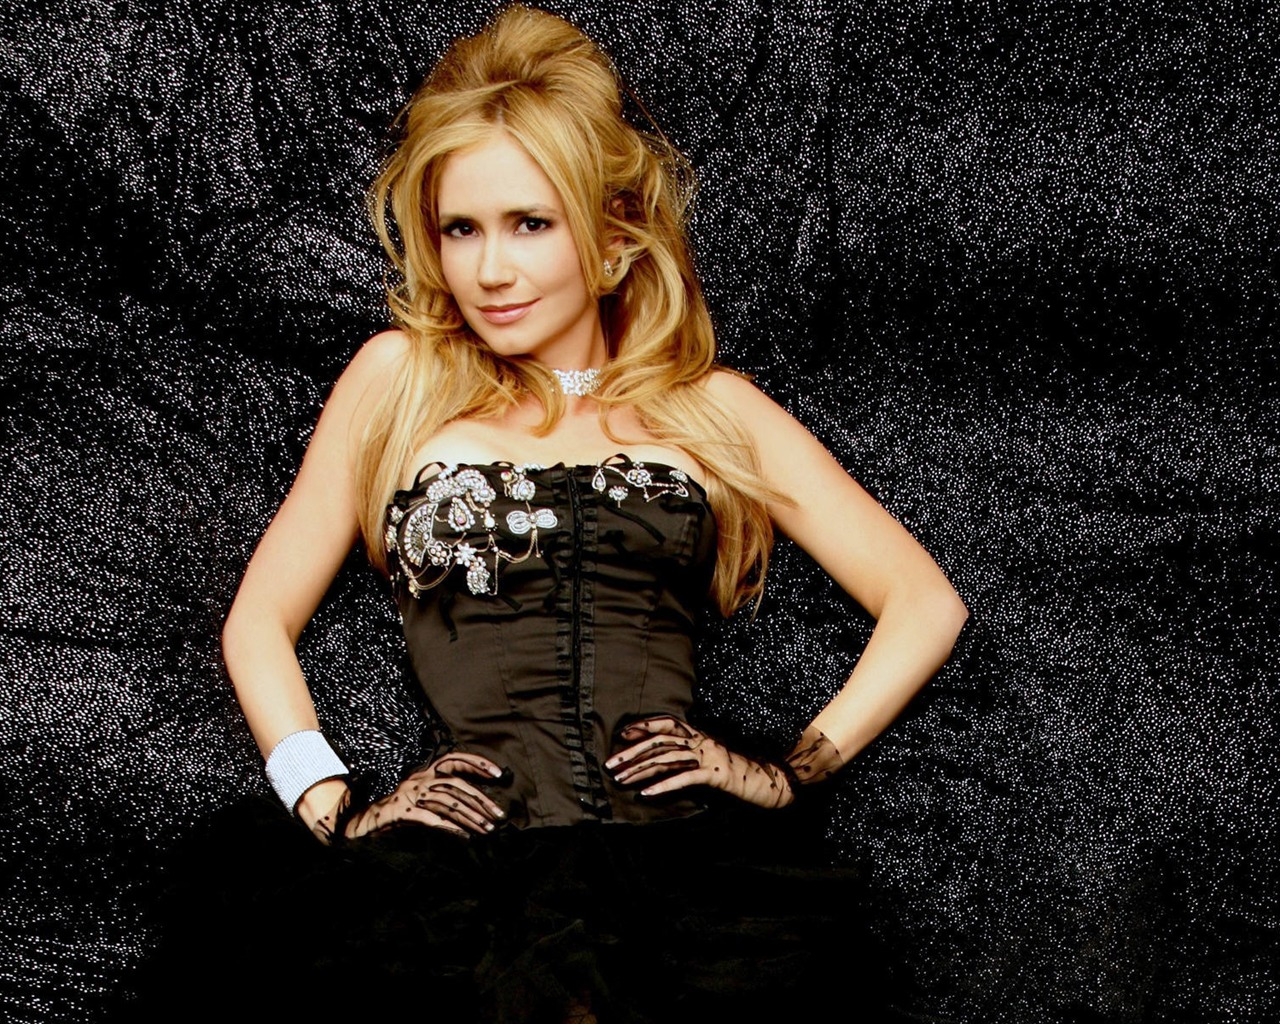 Ashley Jones #009 - 1280x1024 Wallpapers Pictures Photos Images